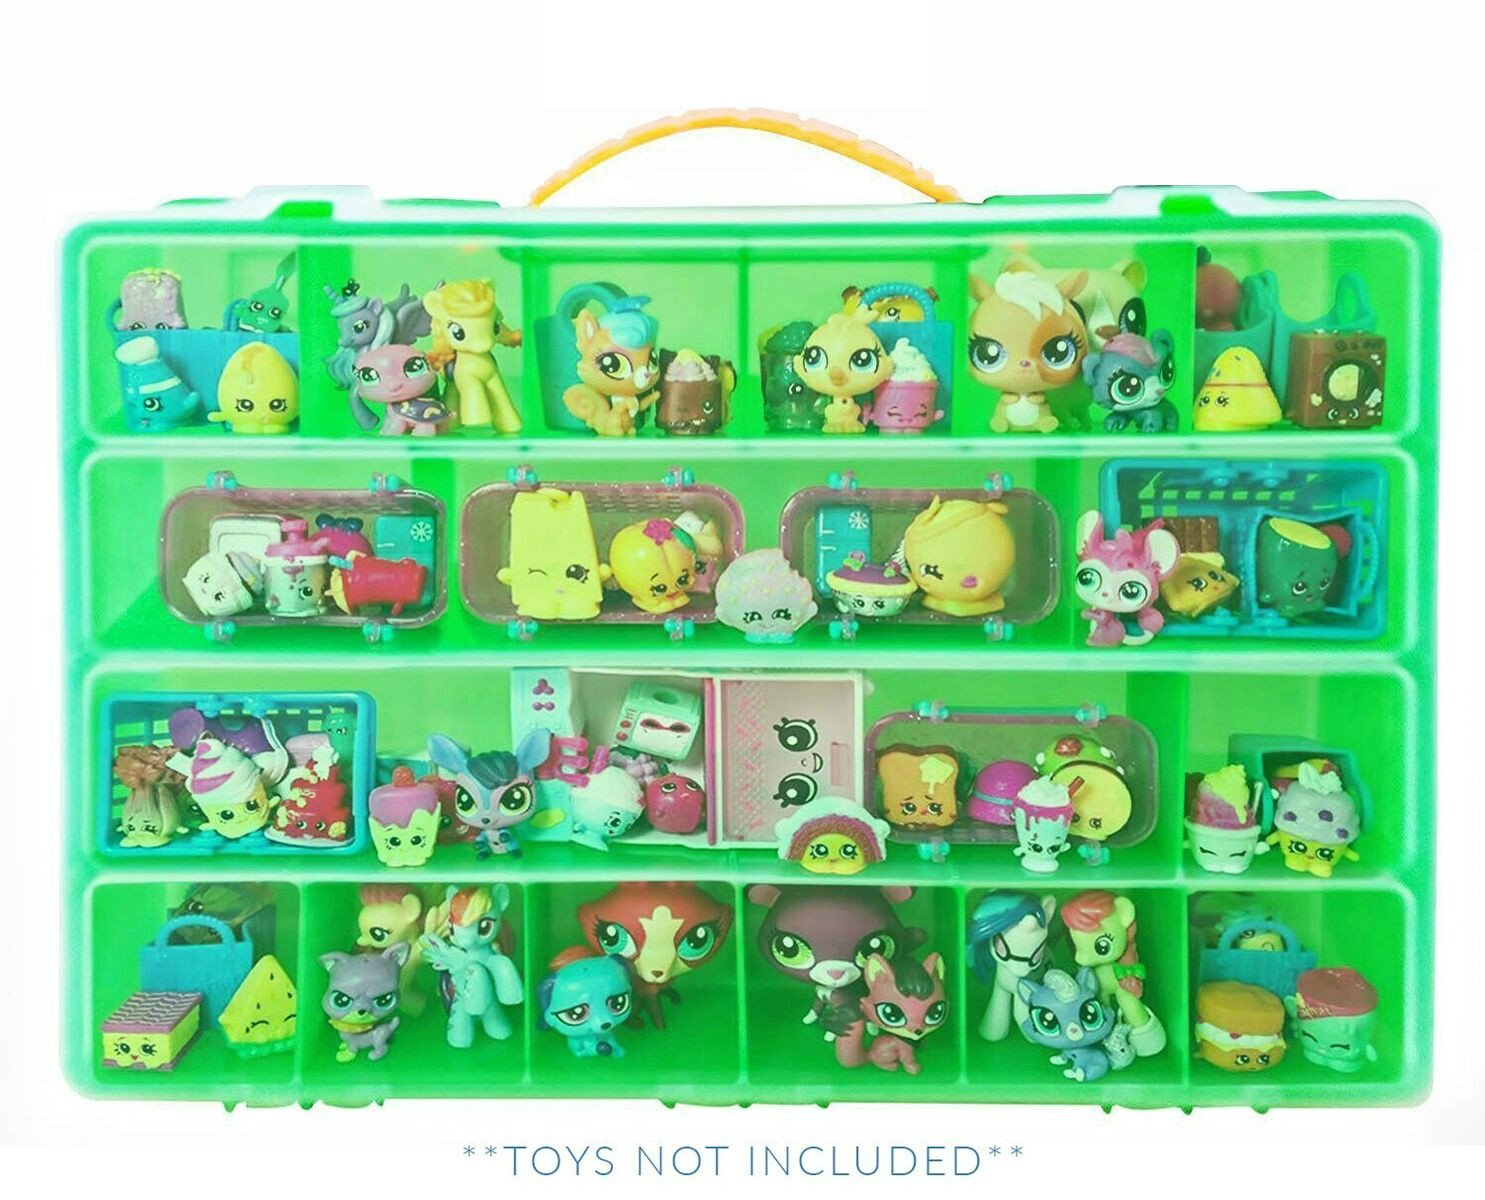 Shopkins Case, Toy Storage Carrying Box. Figures Playset Organizer. Accessories For Kids by LMB Life Made Better